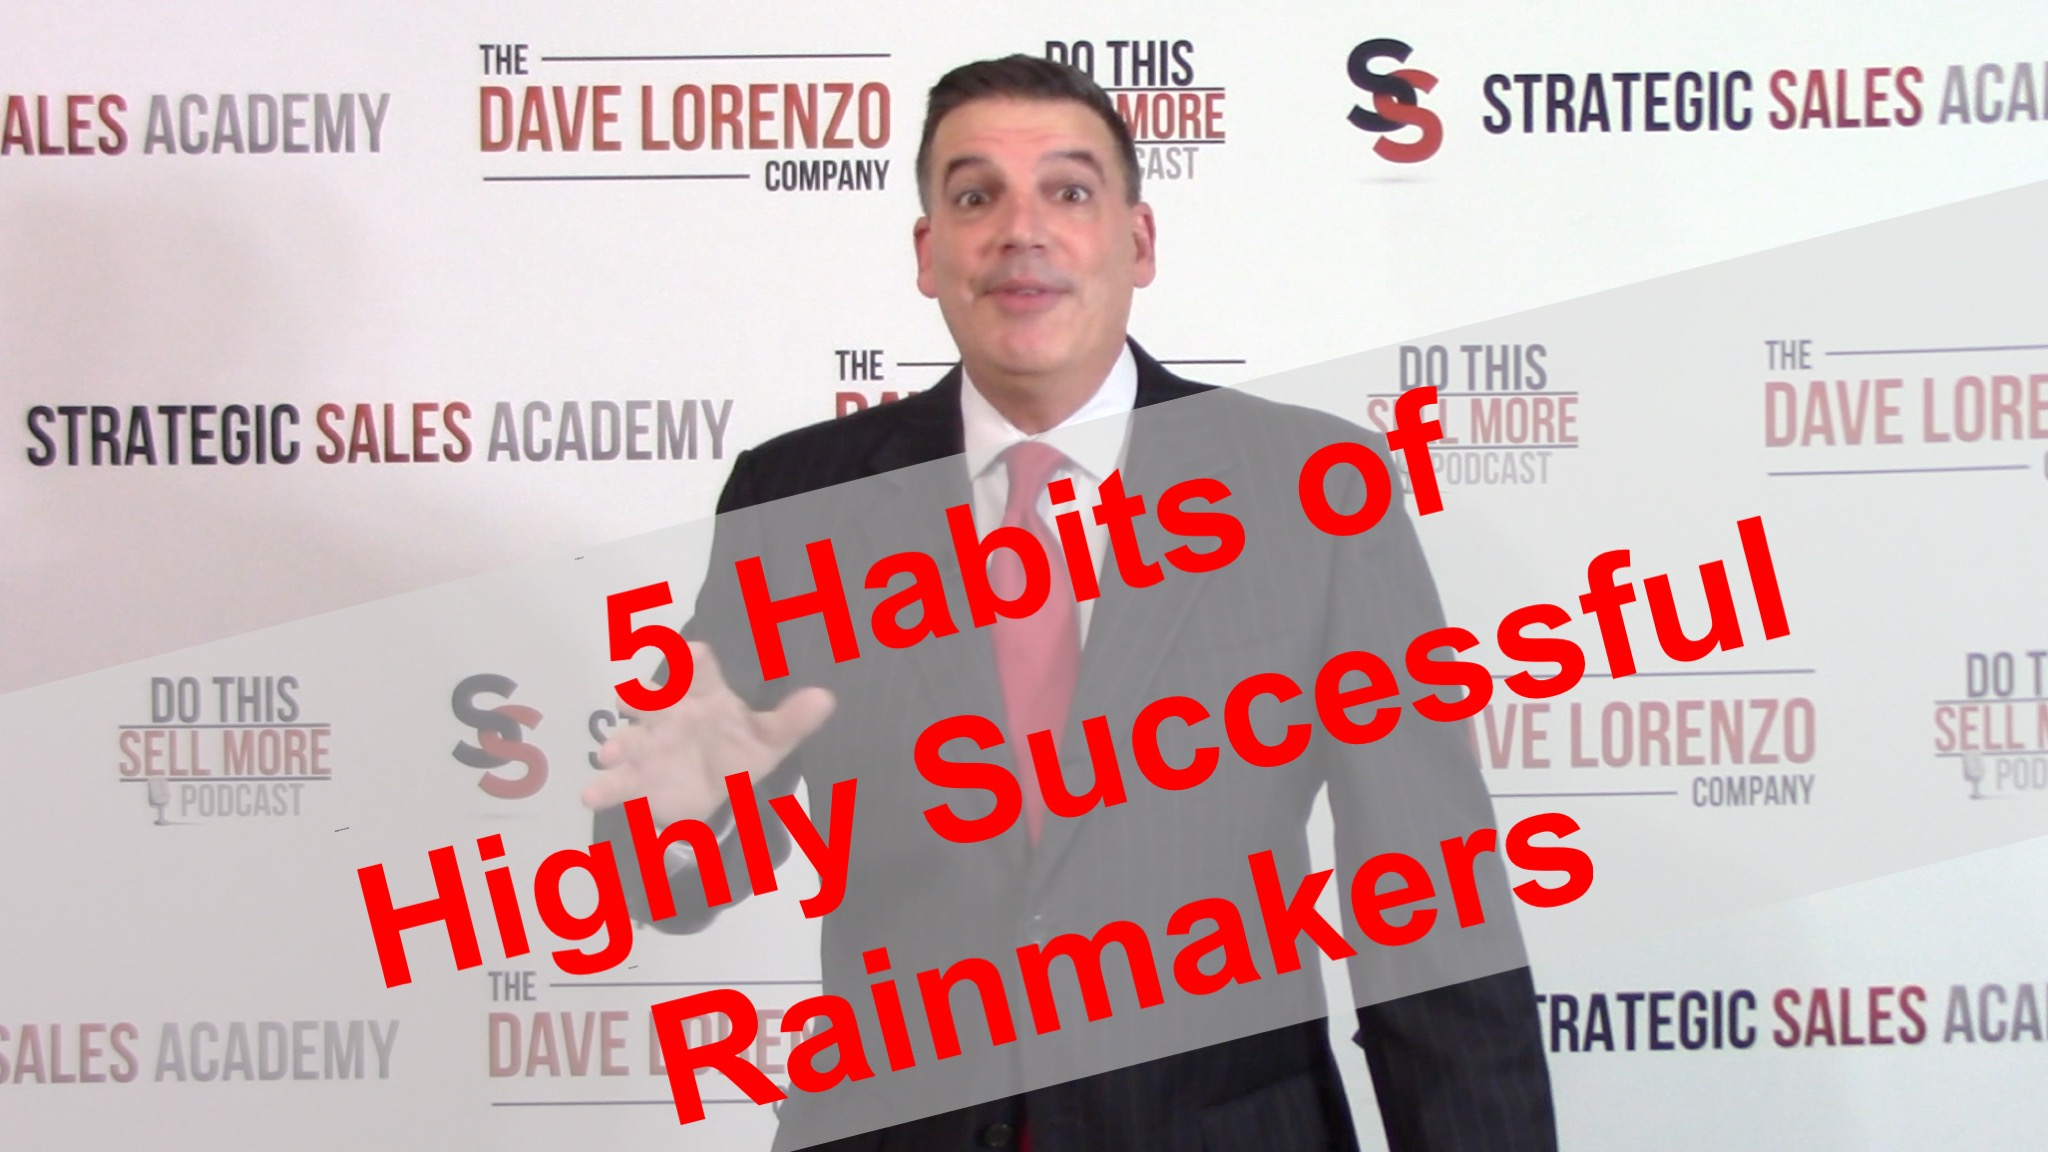 Five Sales Habits of Successful Rainmakers - The Dave Lorenzo Company